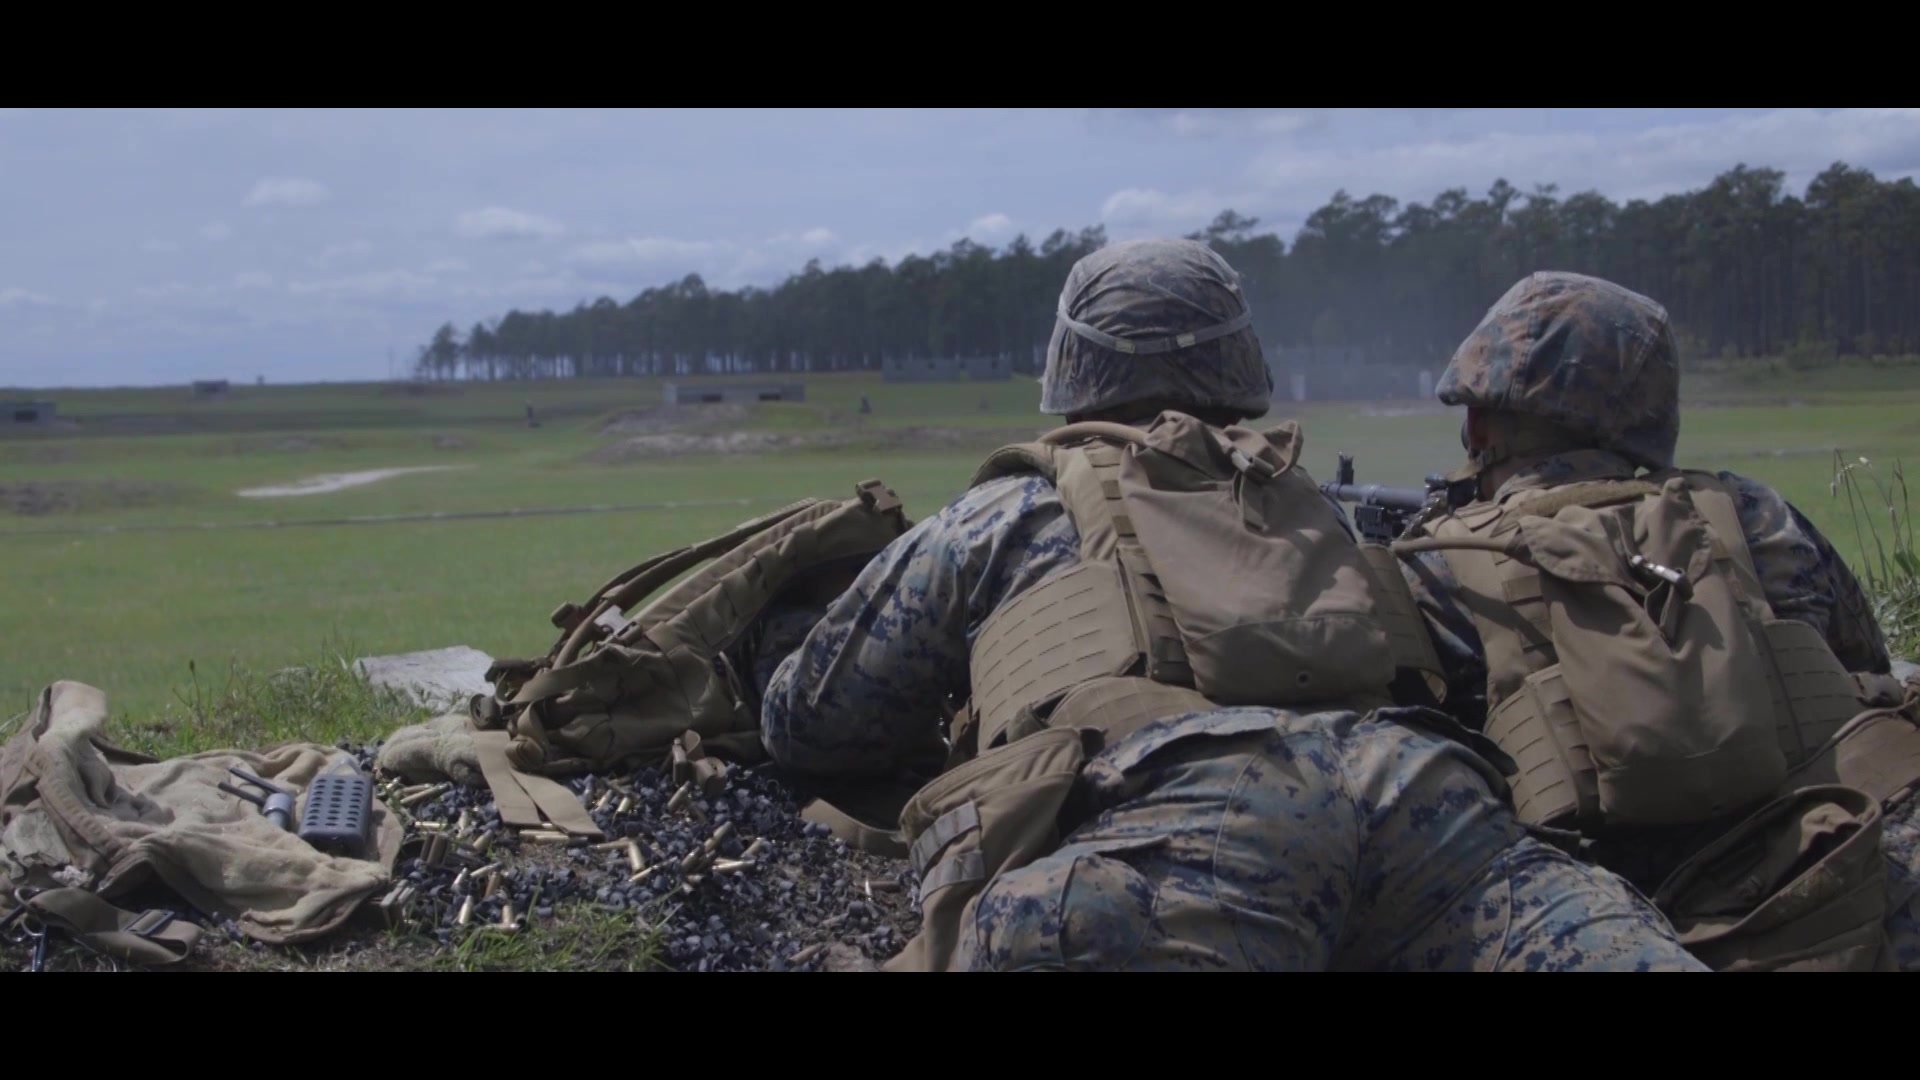 U.S. Marine Corps Major General David J. Furness, Commanding General (CG) of 2d Marine Division (MARDIV) reflects on his time at 2d MARDIV aboard Camp Lejeune, North Carolina, May 28, 2020. Command Reflection is a video series of Furness' time as the 2d MARDIV CG, leading up to his Change of Command. (U.S. Marine Corps video by Lance Cpl. Andrew Smith)